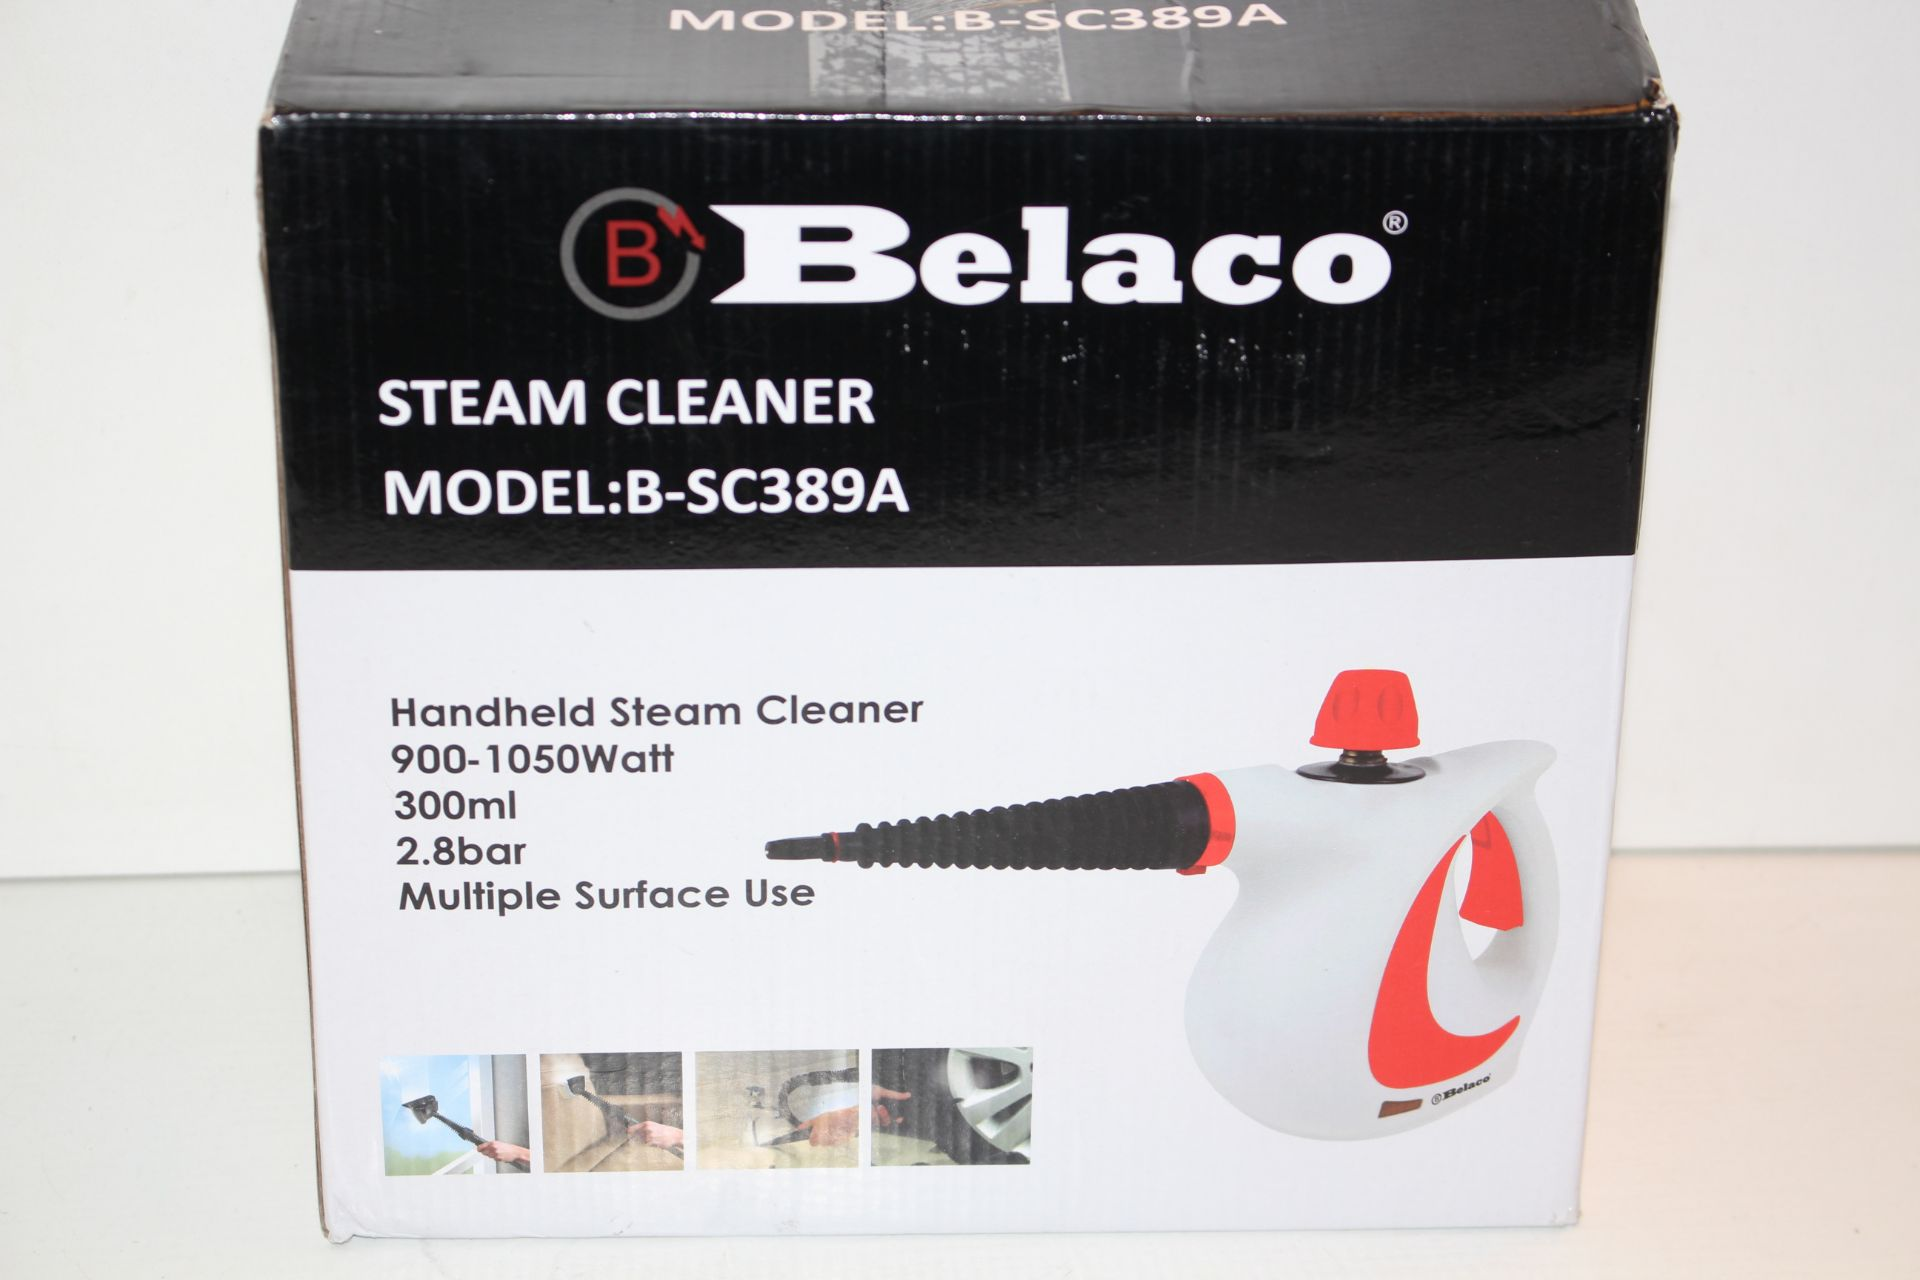 BOXEDE BELACO STEAM CLEANER, MODEL- BSC38Condition ReportAppraisal Available on Request- All Items